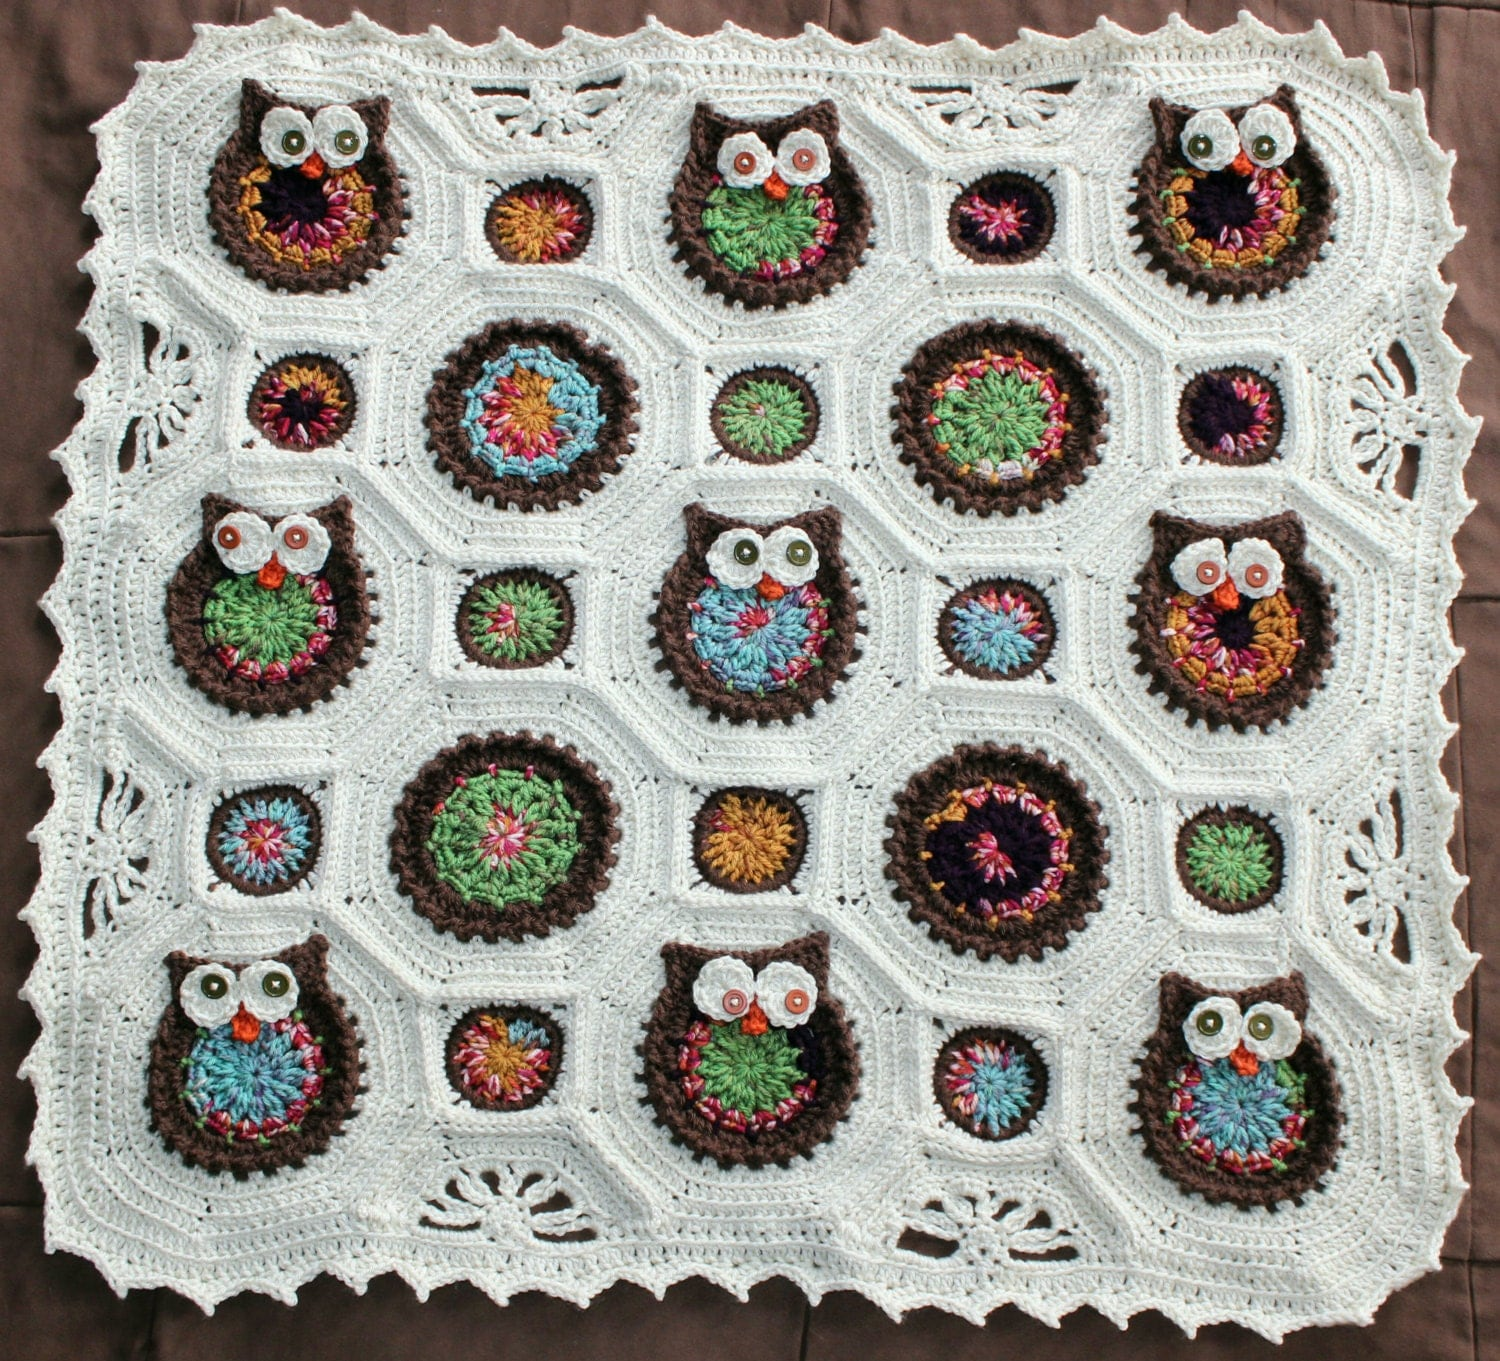 Free Crochet Pattern For Owl Baby Blanket : Reserved for Tracey Dispoto Owl Crochet Baby Blanket